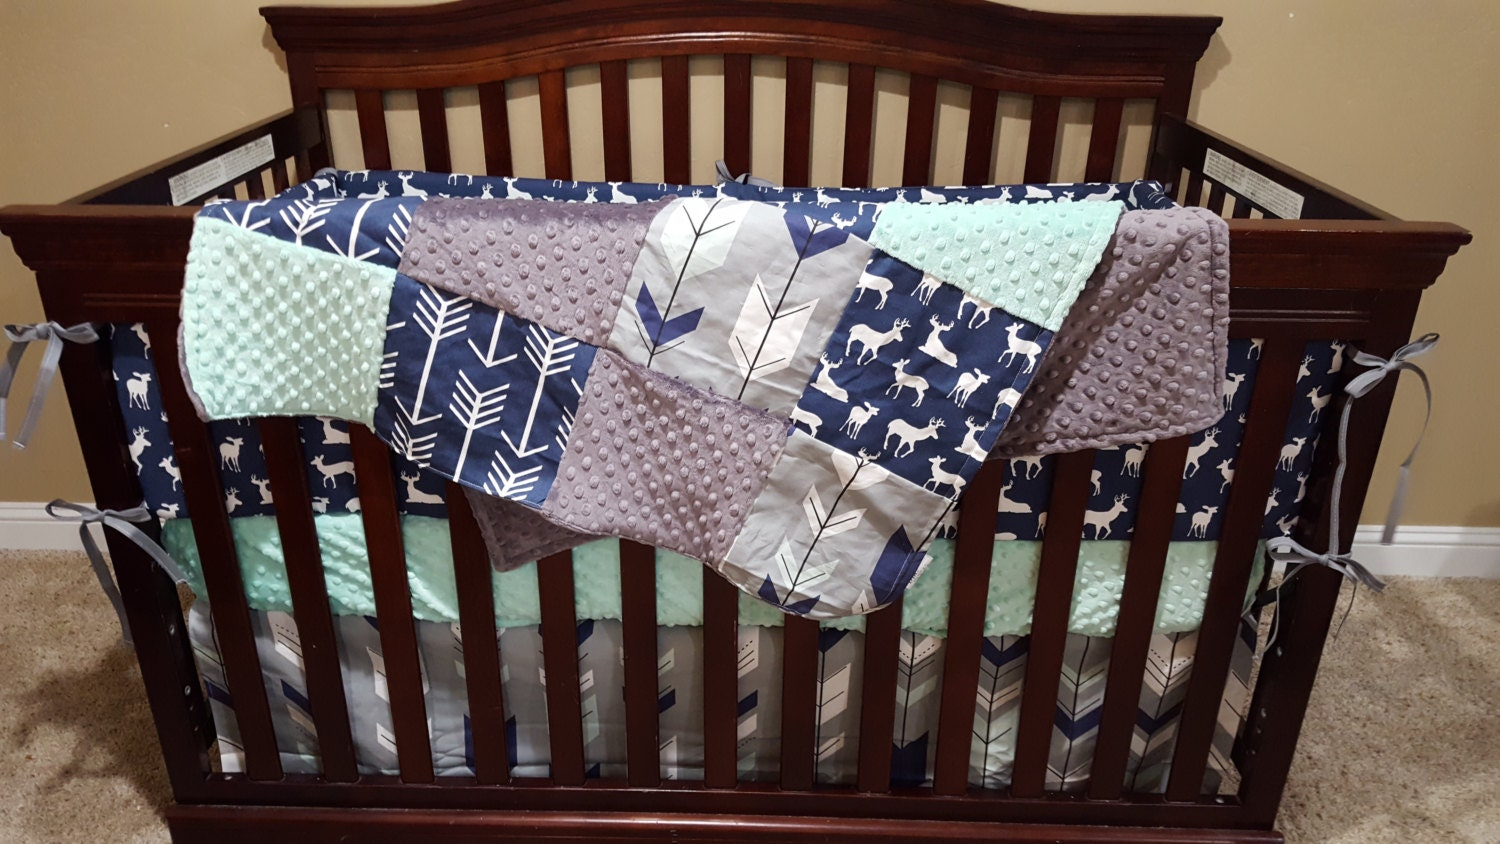 Baby Boy Crib Bedding Navy Deer Fletching Arrow Navy